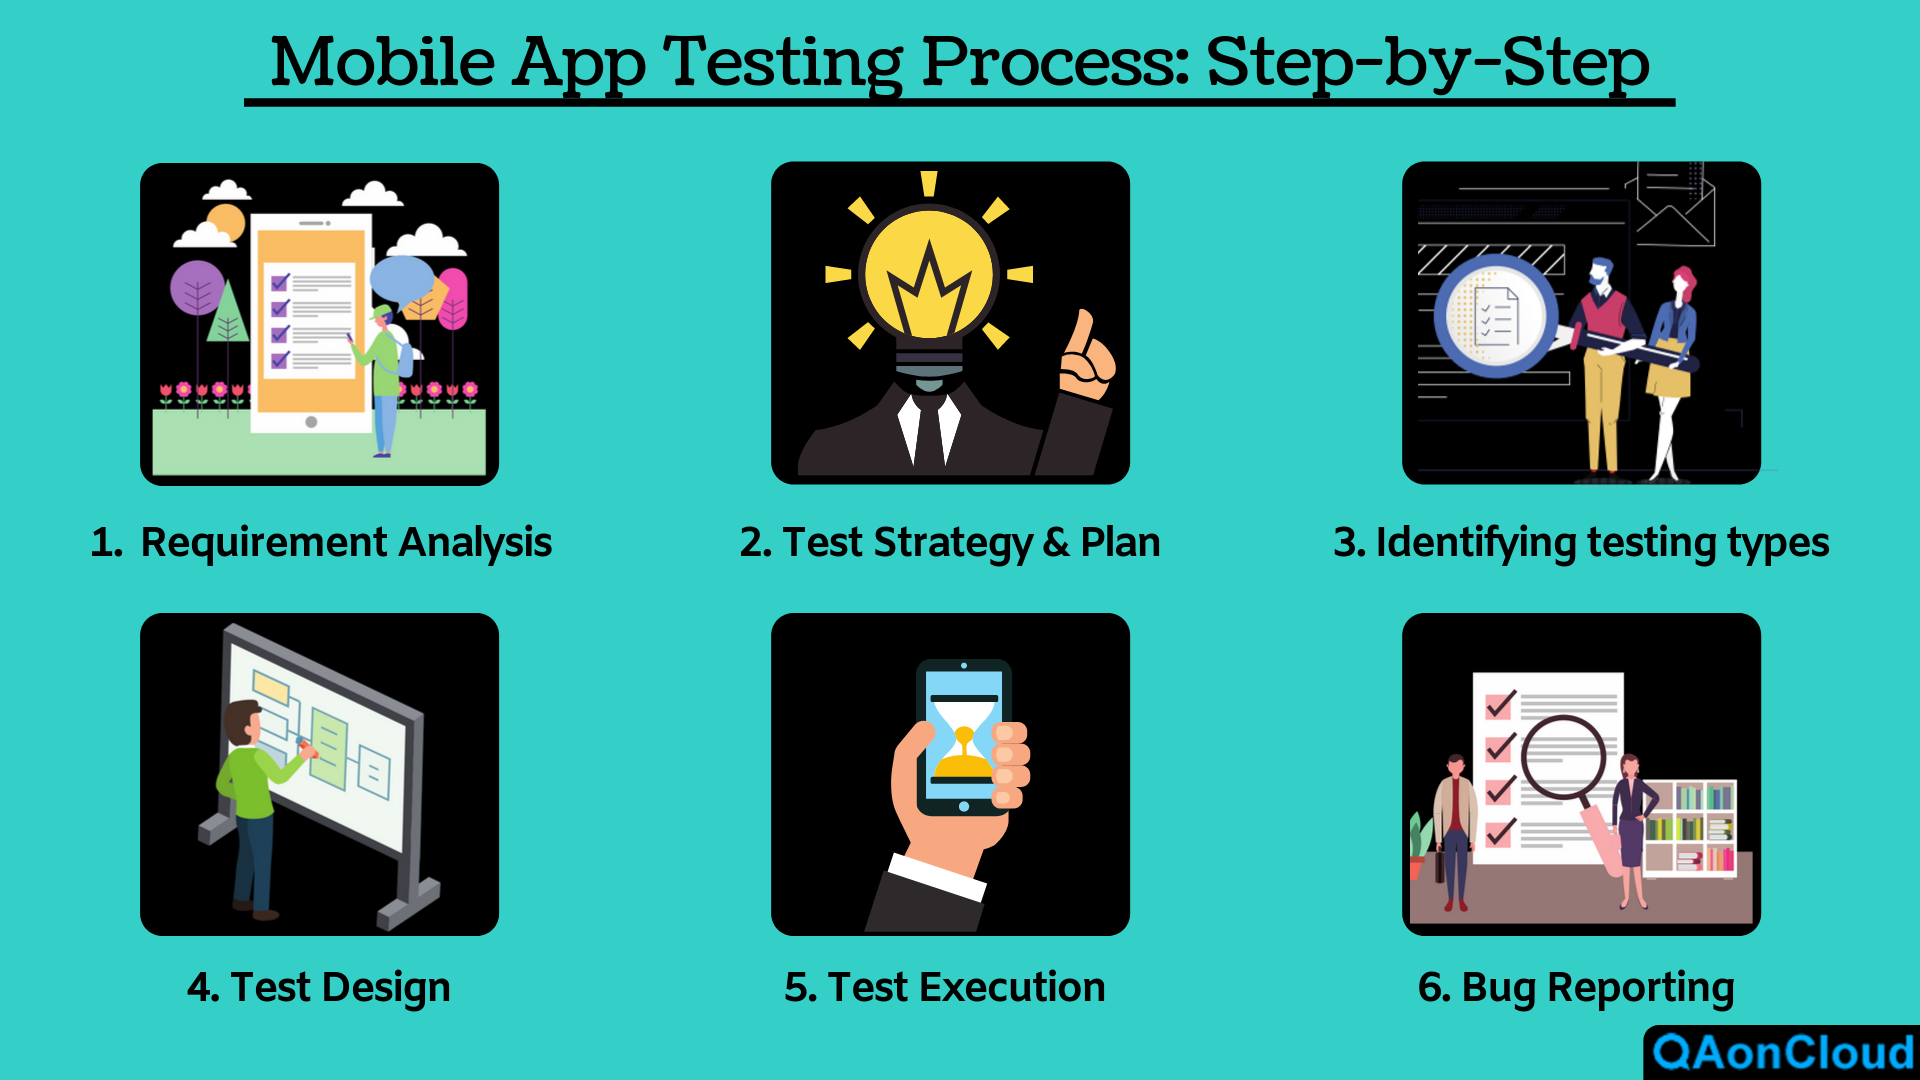 Mobile App Testing Process step by step